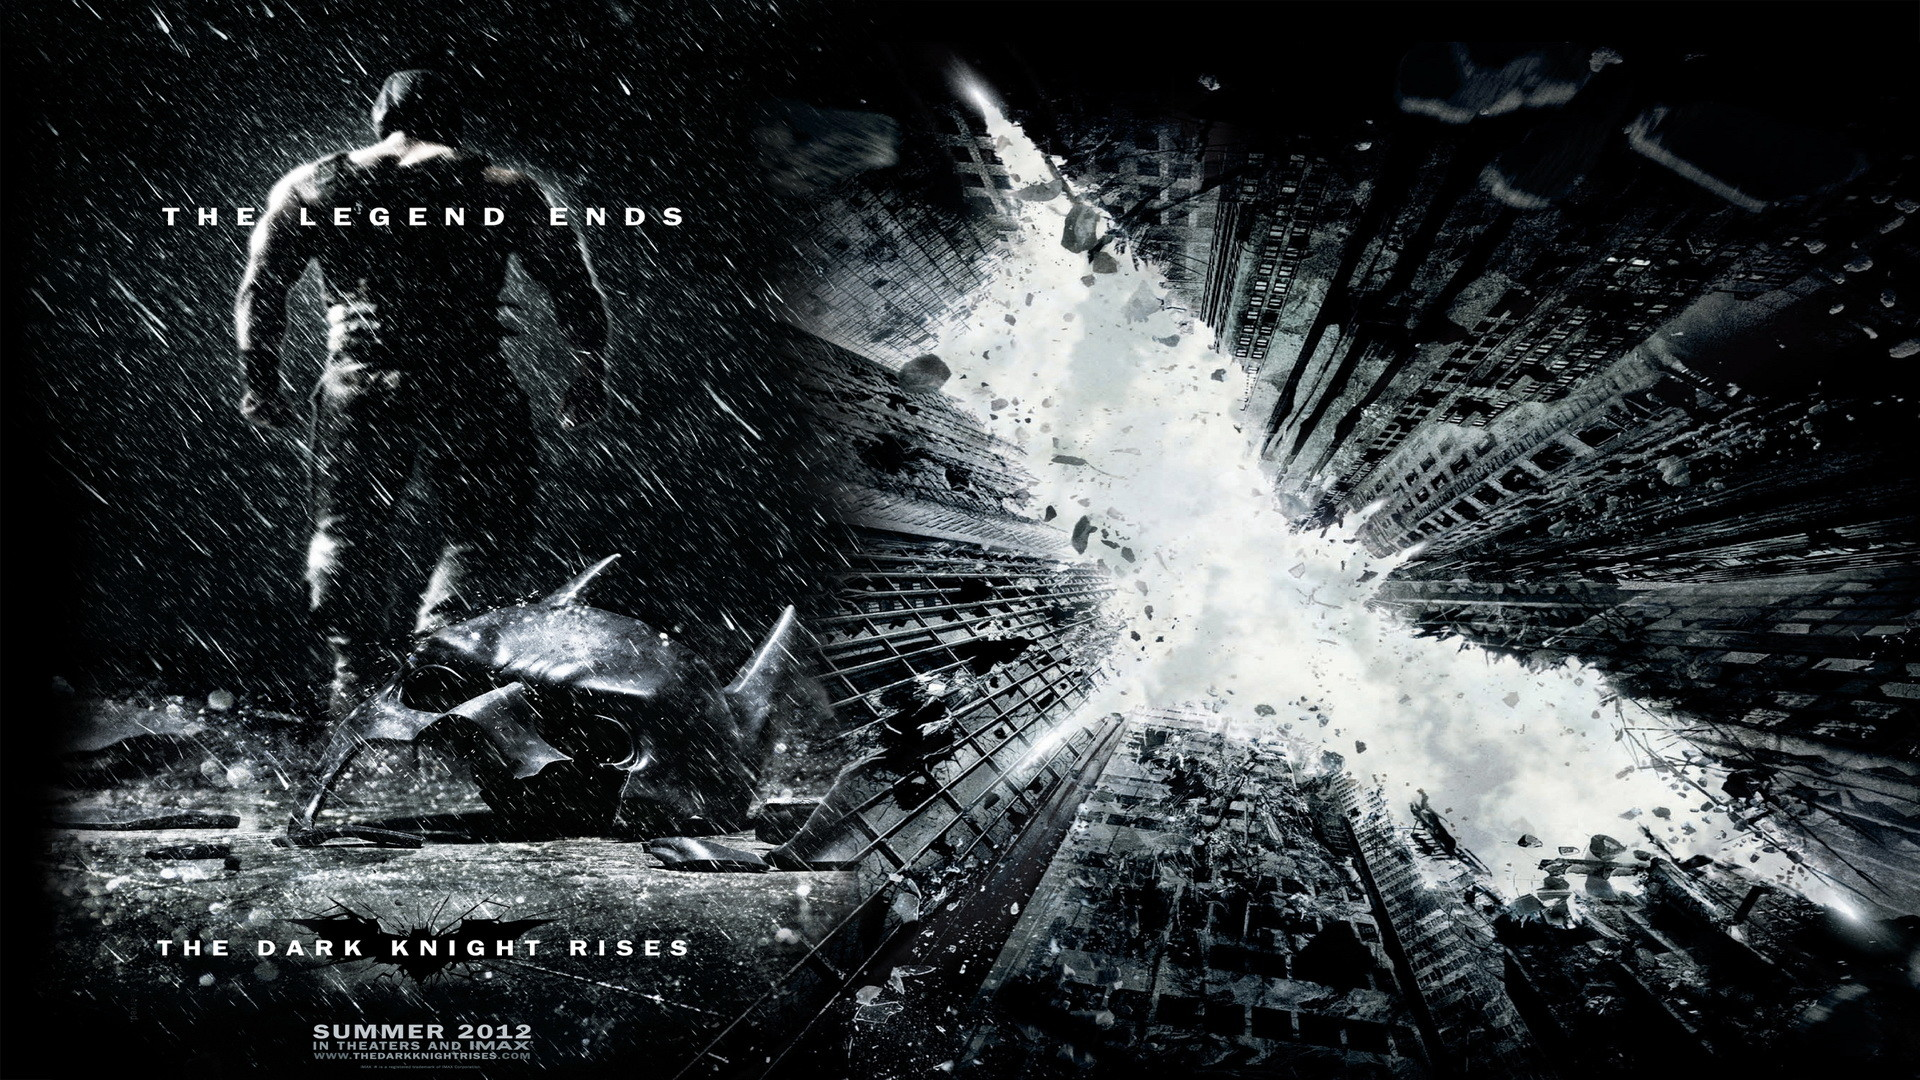 The Dark Knight Rises Wallpaper Hd 1920x1080 Wallpapertag